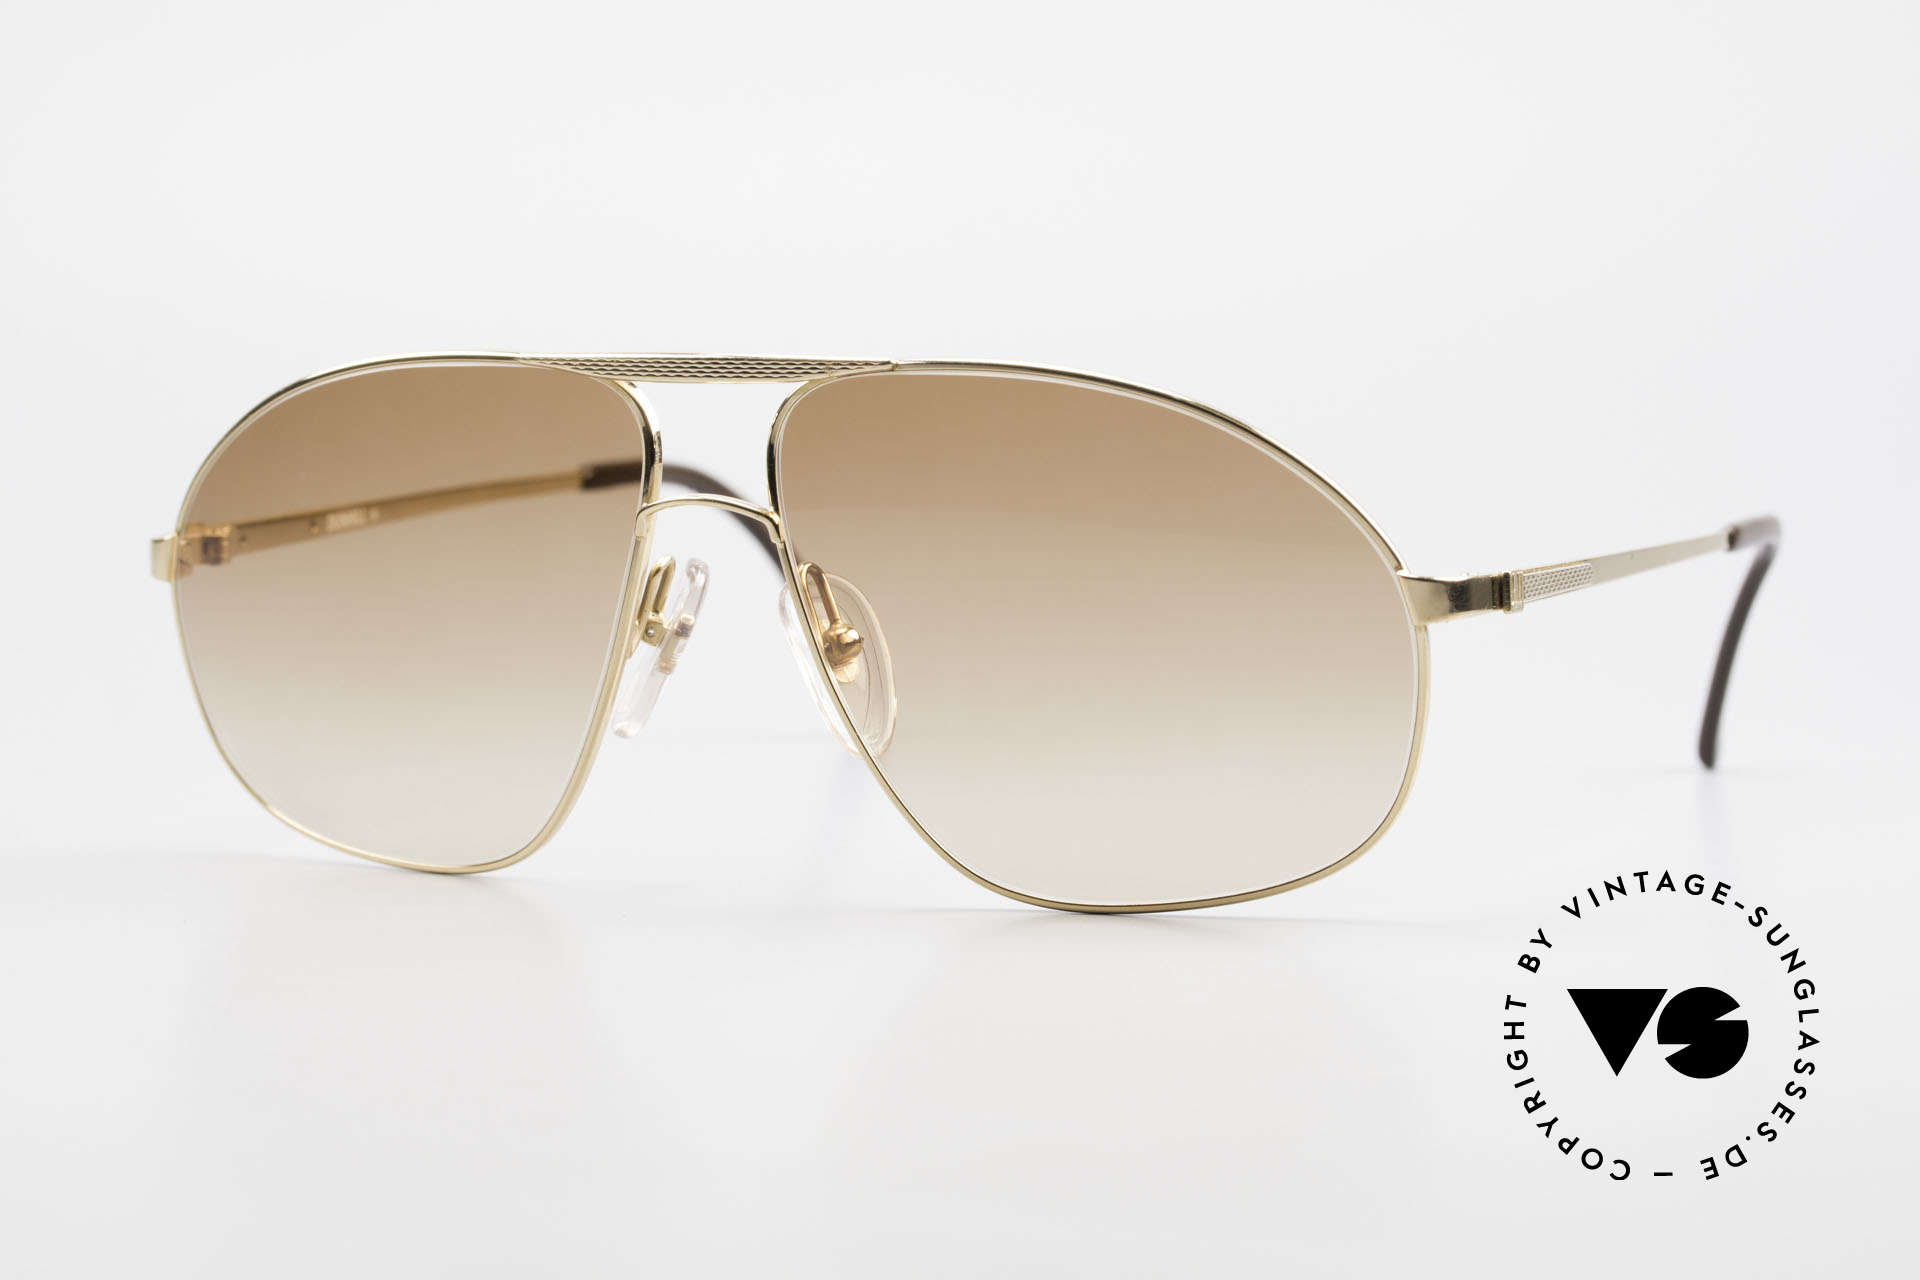 Dunhill 6125 Gold Plated Aviator Frame 90's, LUXURY vintage sunglasses by A. DUNHILL from 1990, Made for Men